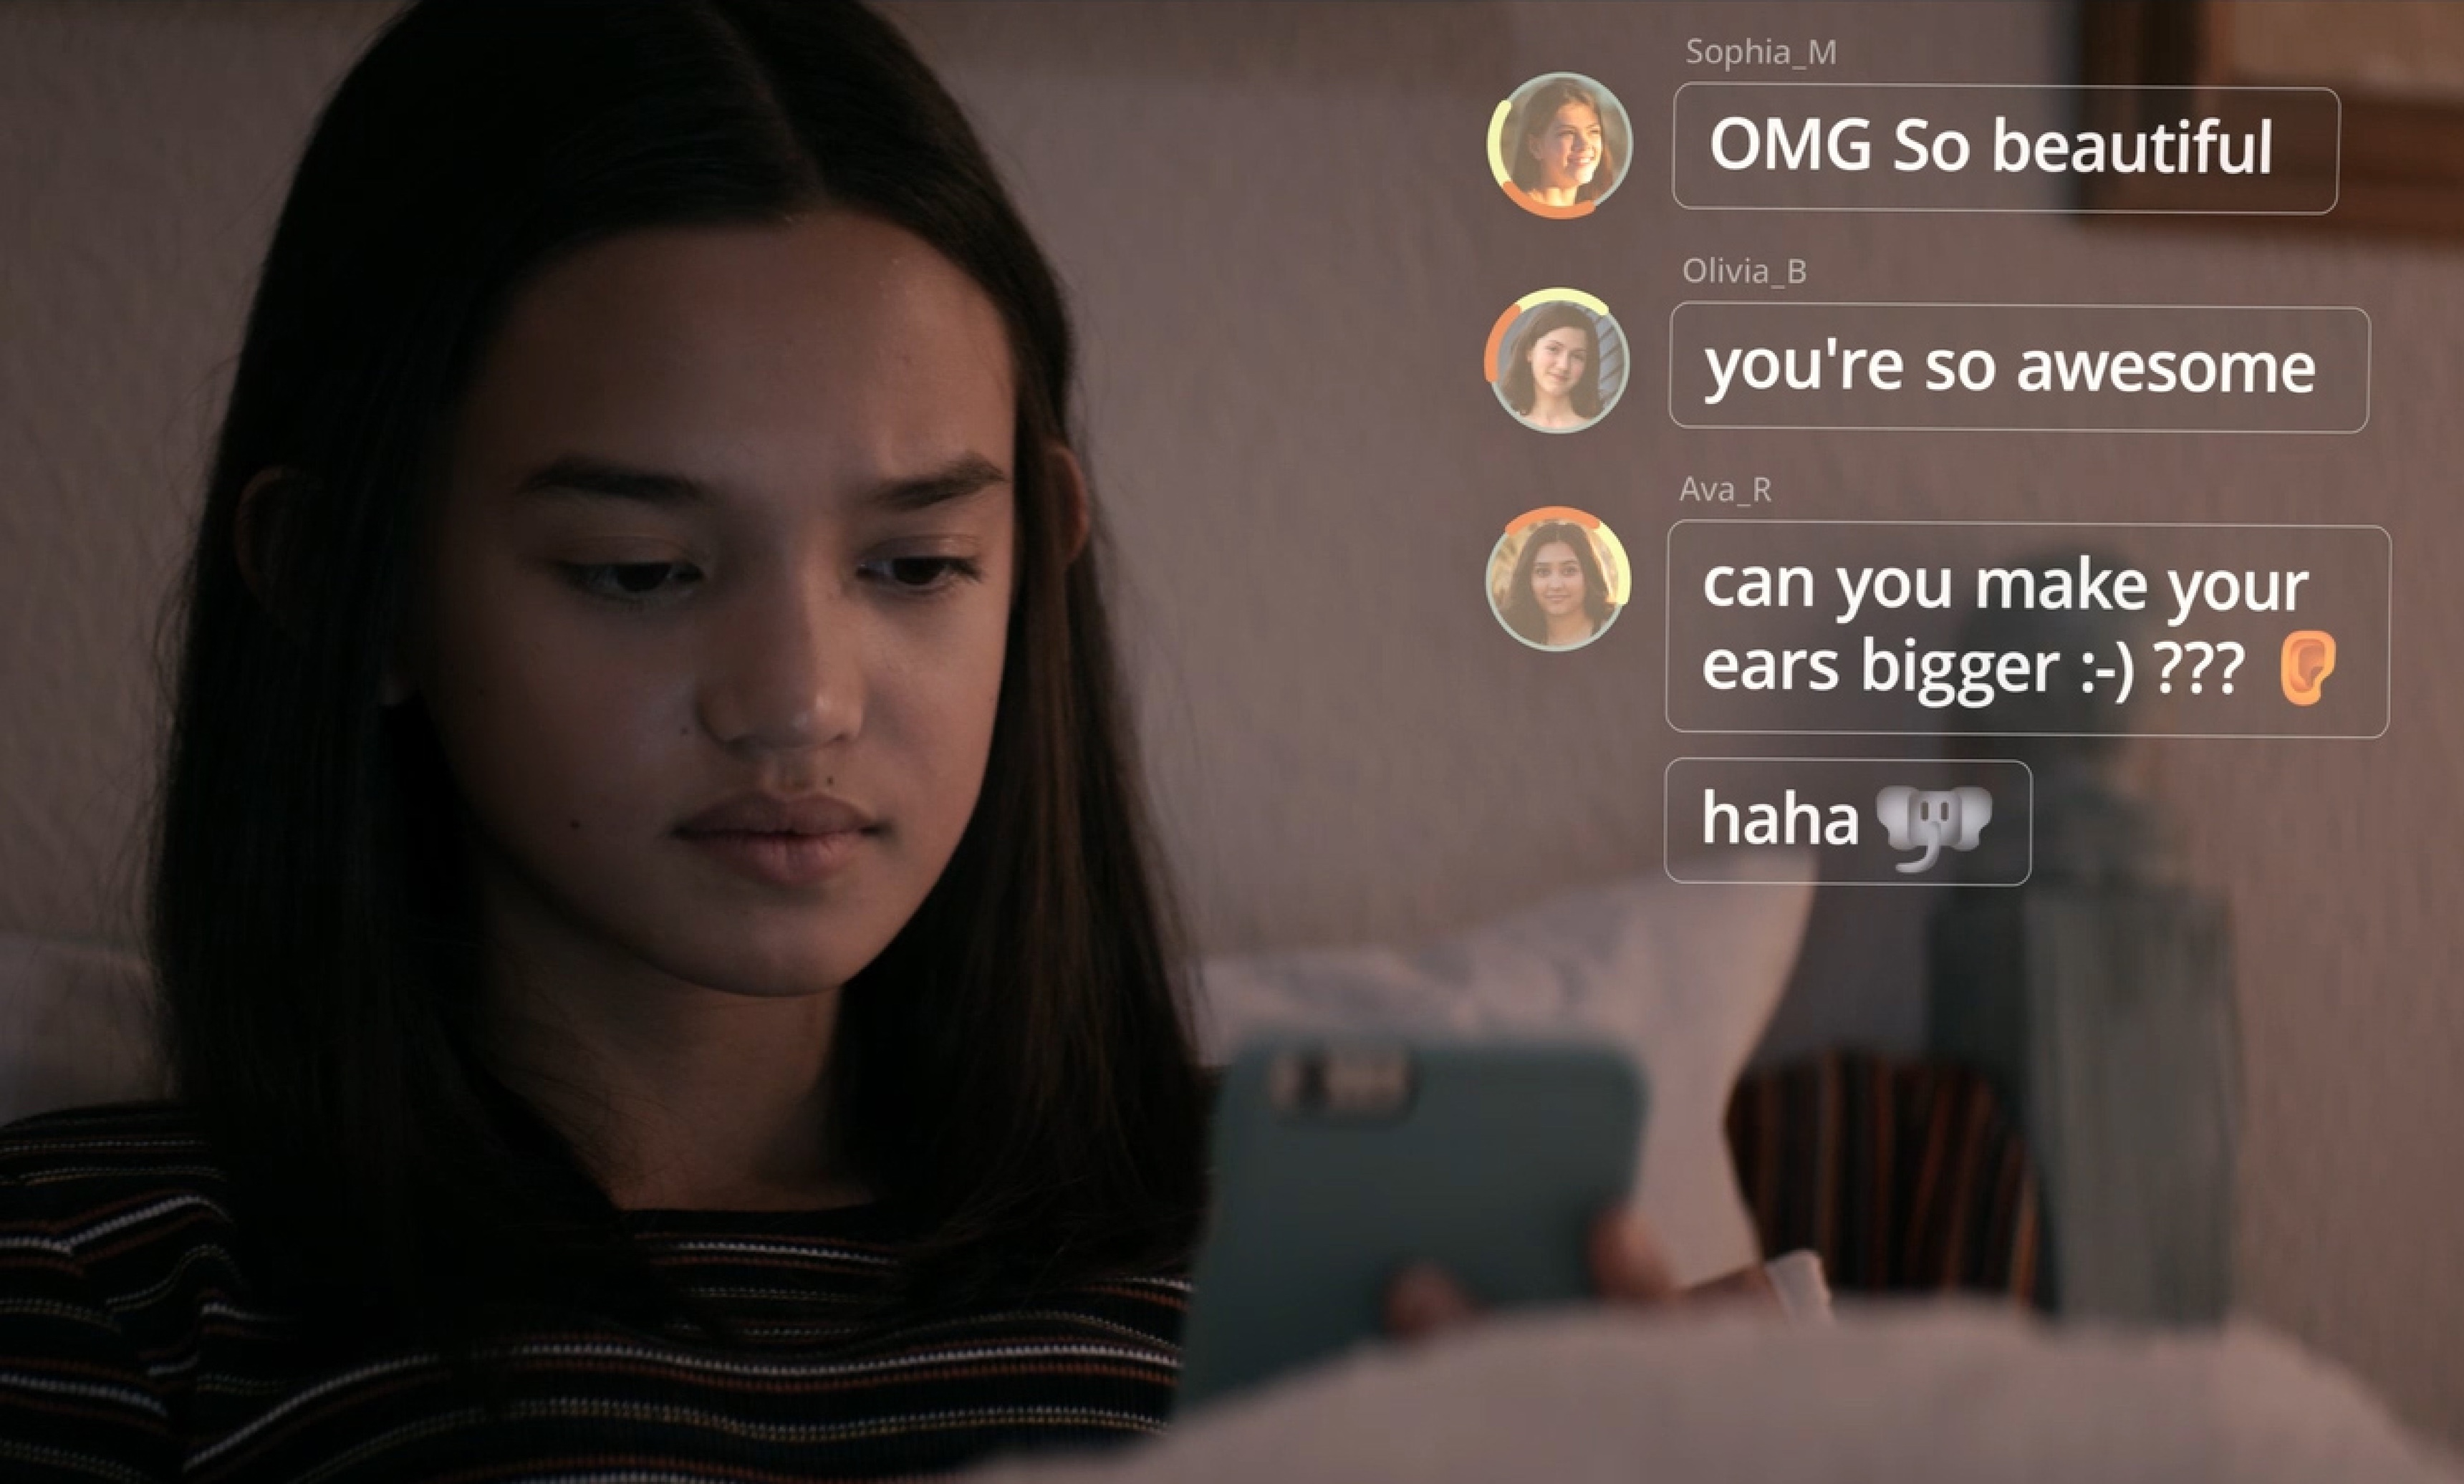 """A young girl is pictured in her room, looking at her phone. Social media comments are superimposed on the frame, reading """"OMG So beautiful""""; """"you're so awesome""""; and """"Can you make your ears bigger?"""""""